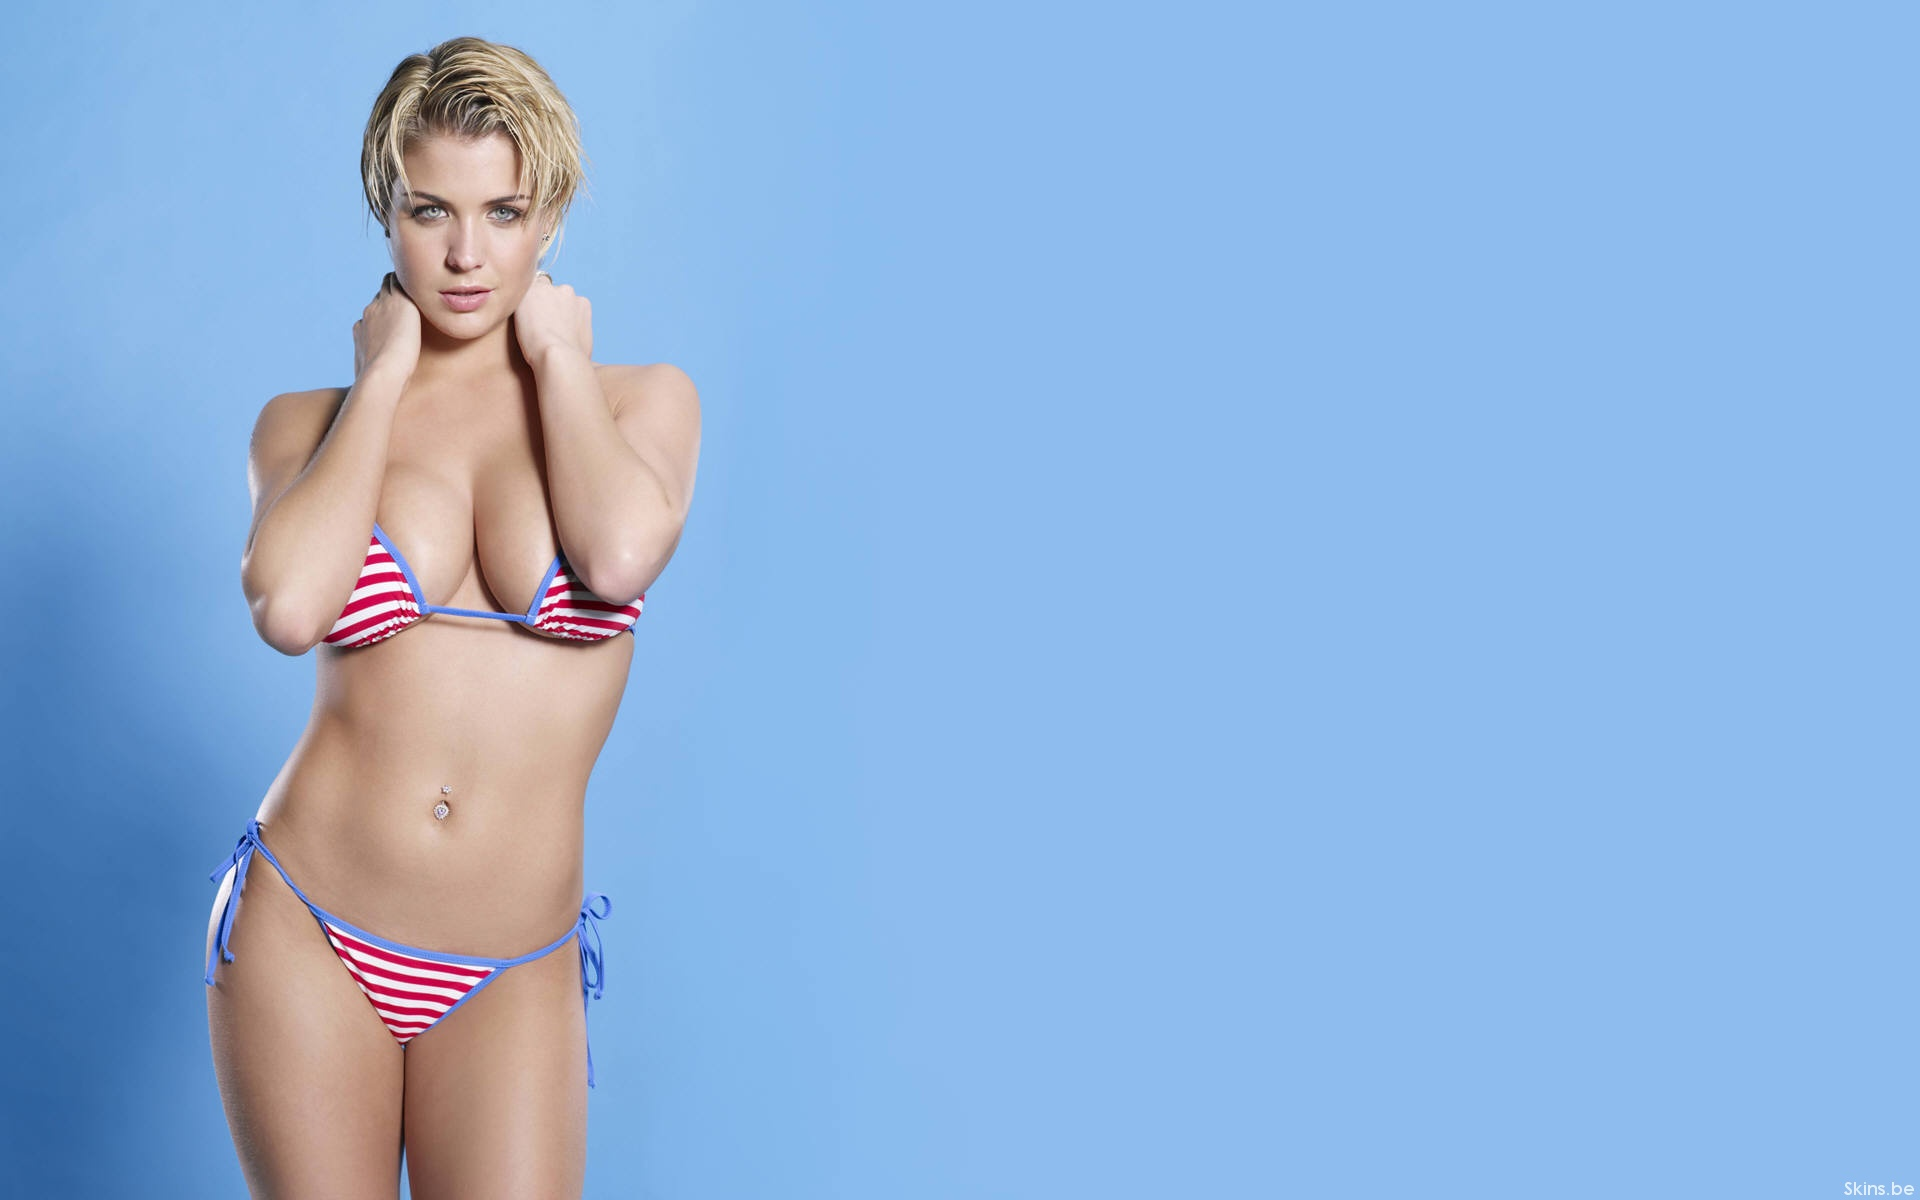 Gemma Atkinson wallpaper (#38789)